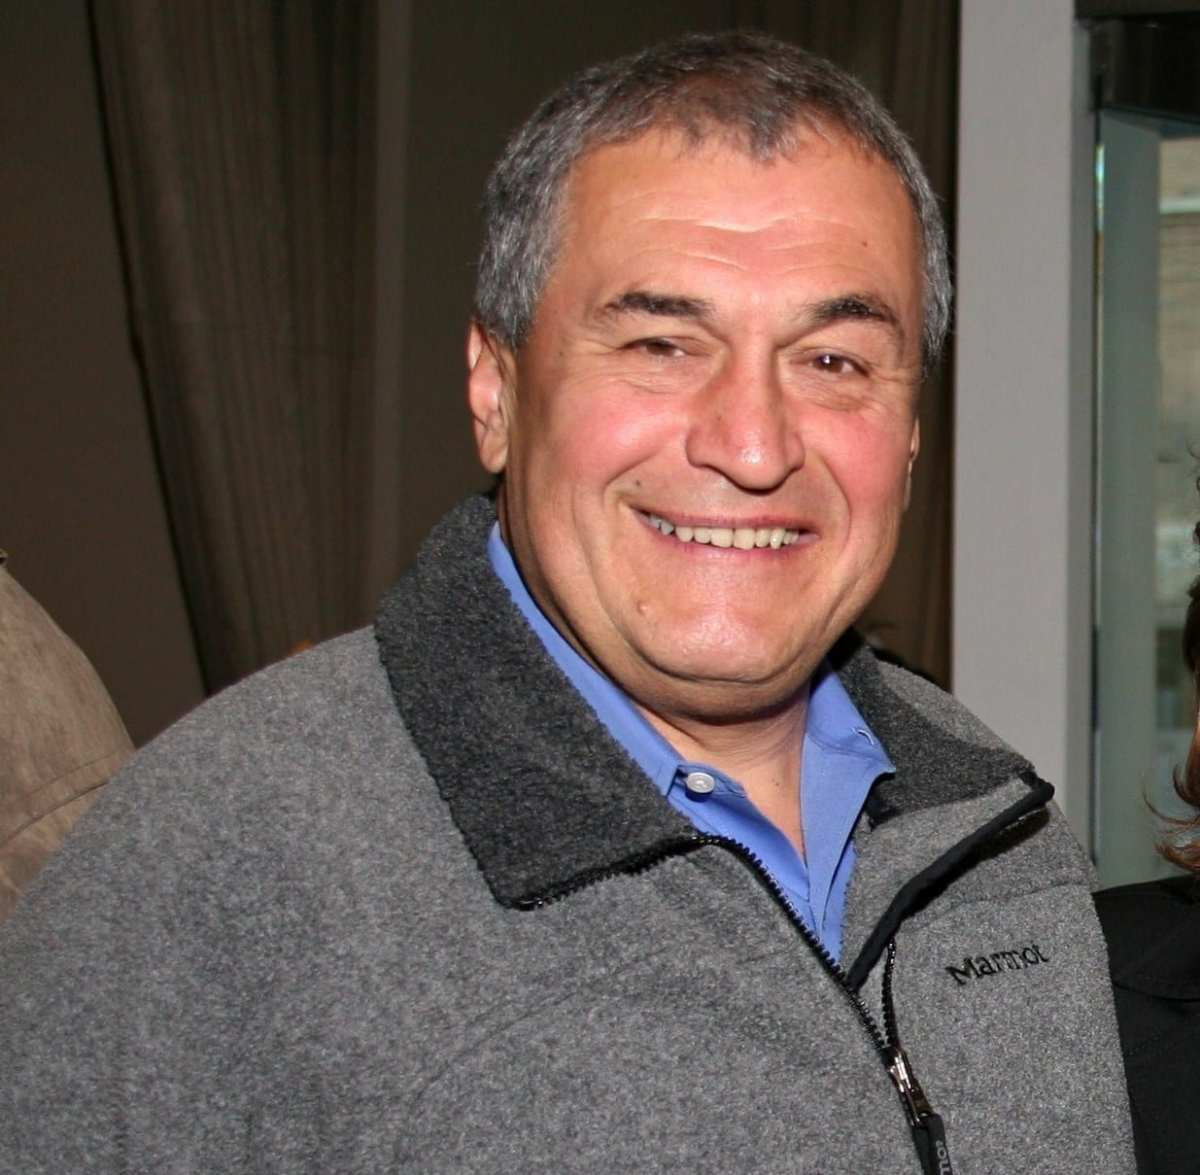 CLAIM: Tony Podesta has been arrested